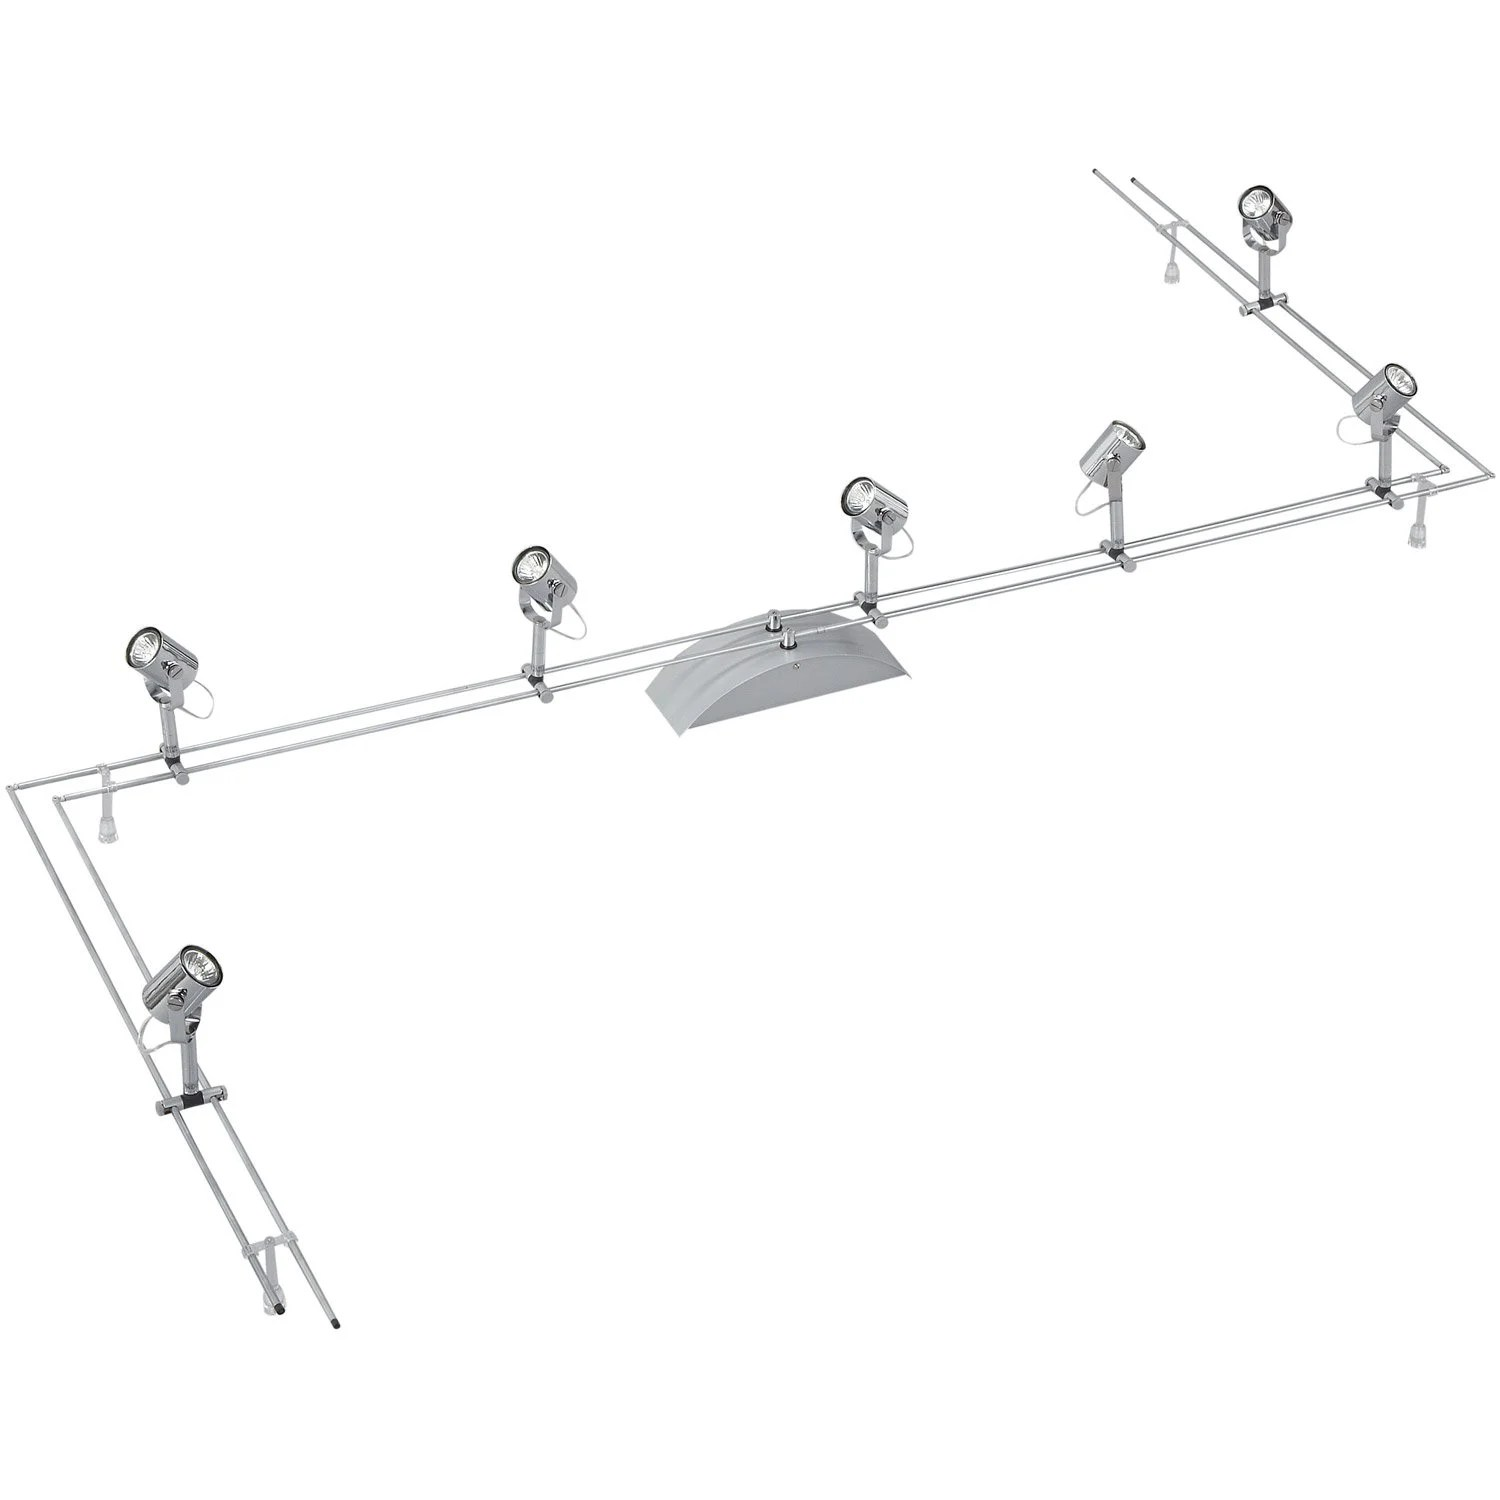 Eclairage Led Sur Cable Tendu Kit Rail Comet Ii Gu4 7 X 20 W Paulmann Leroy Merlin